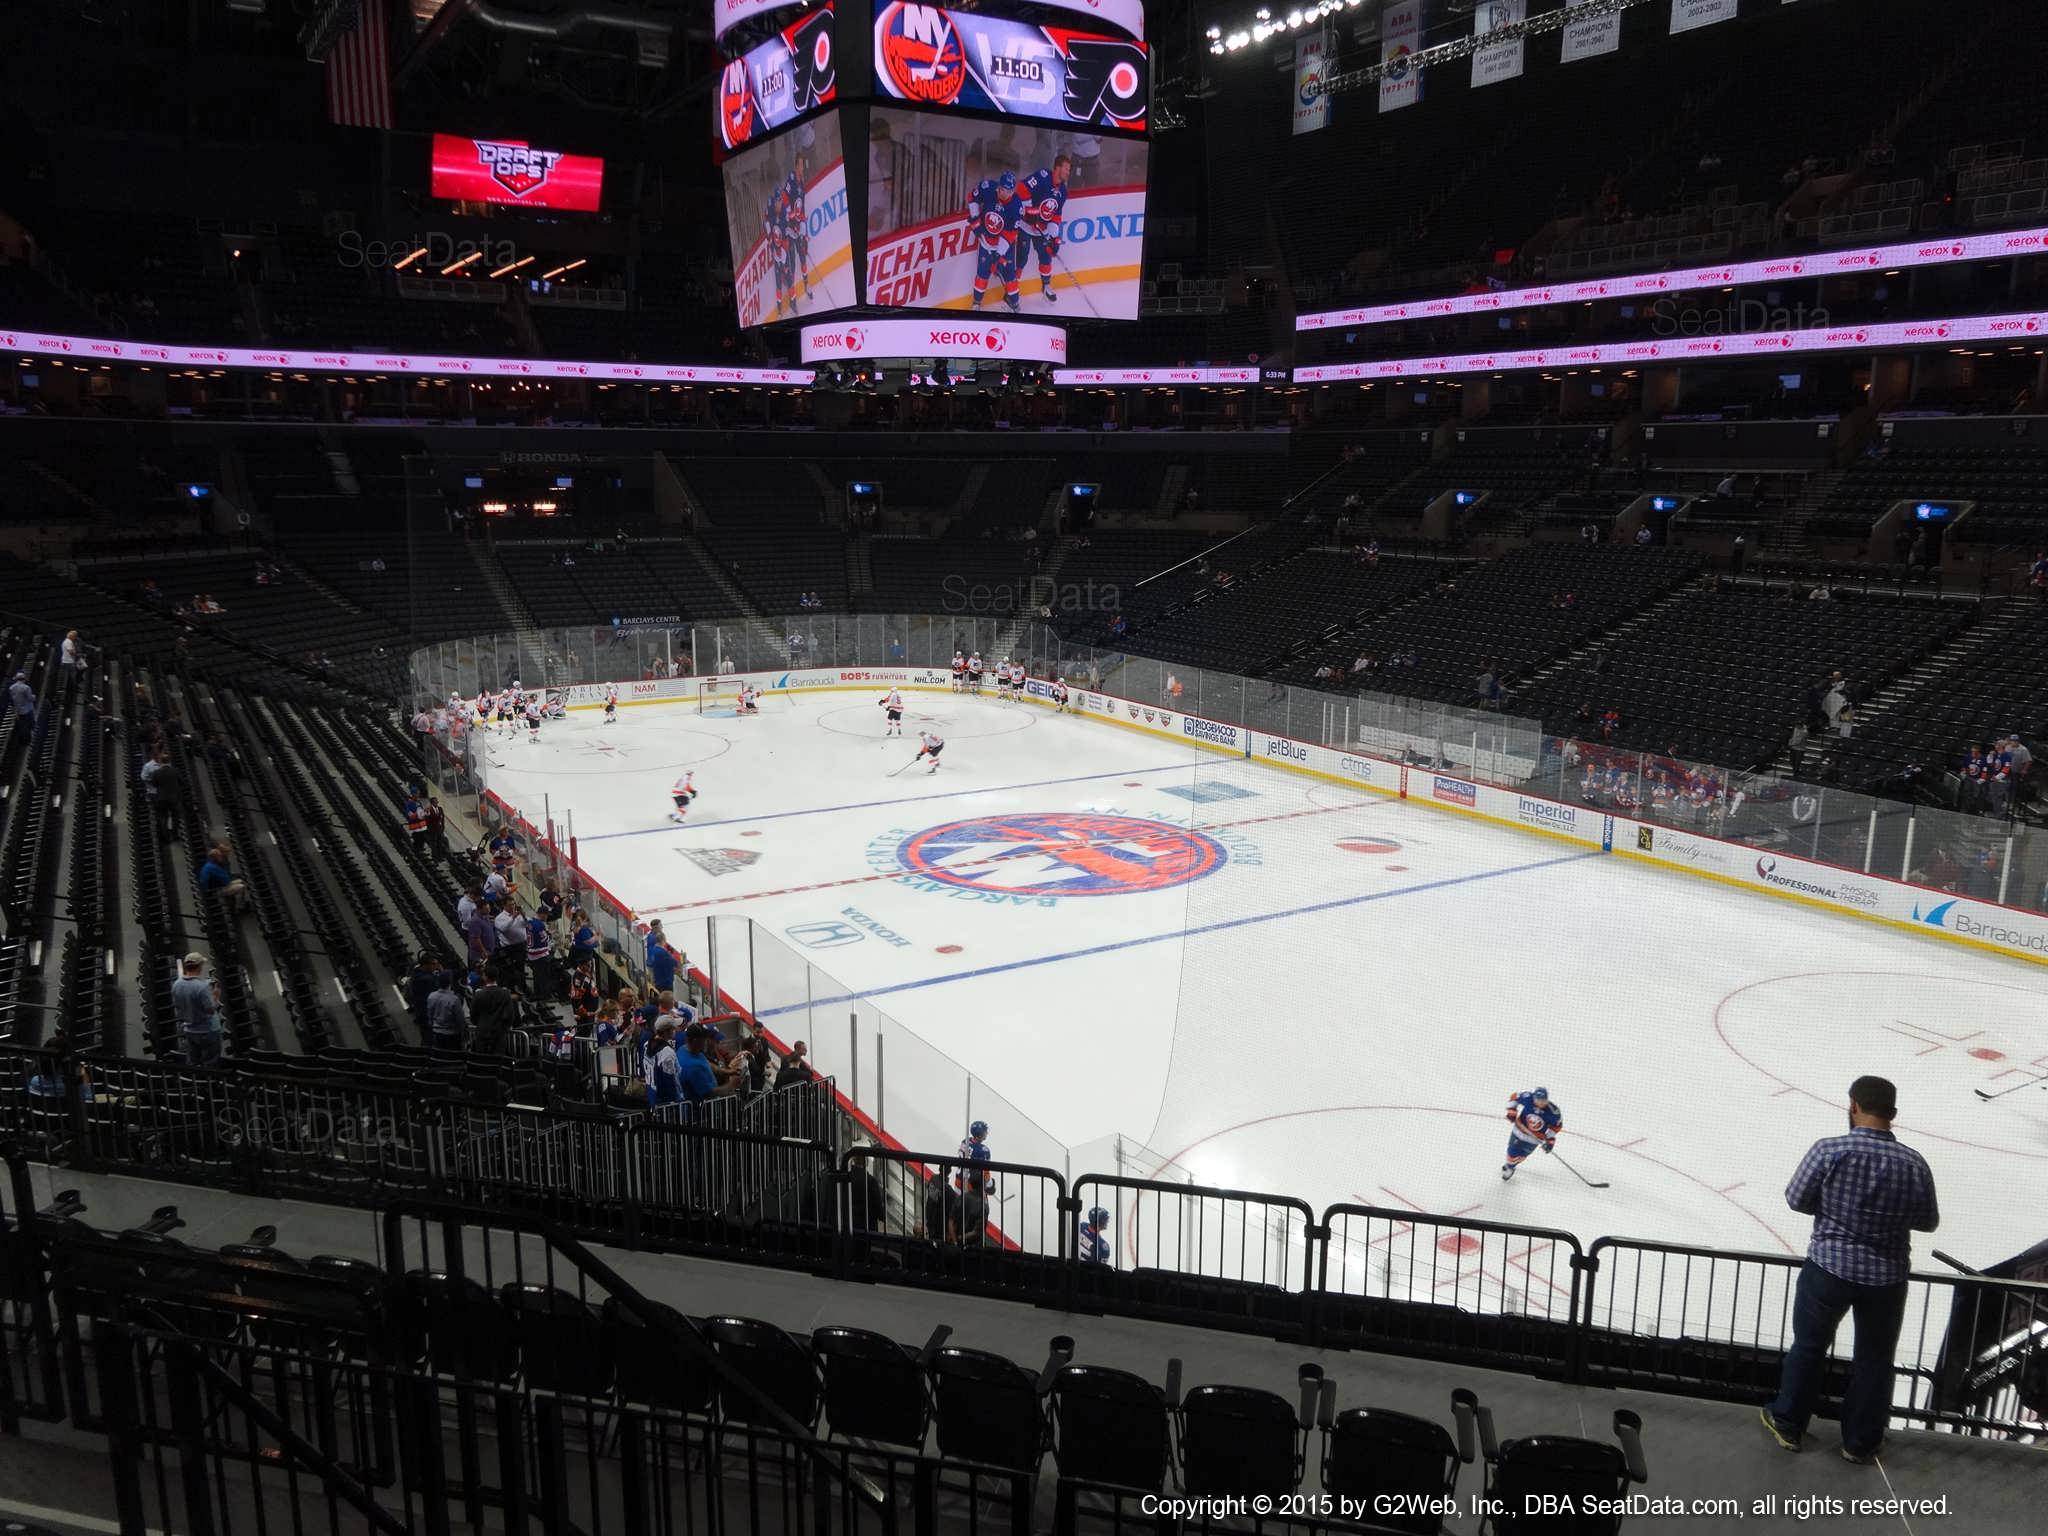 Seat View from Section 102 at the Barclays Center, home of the New York Islanders